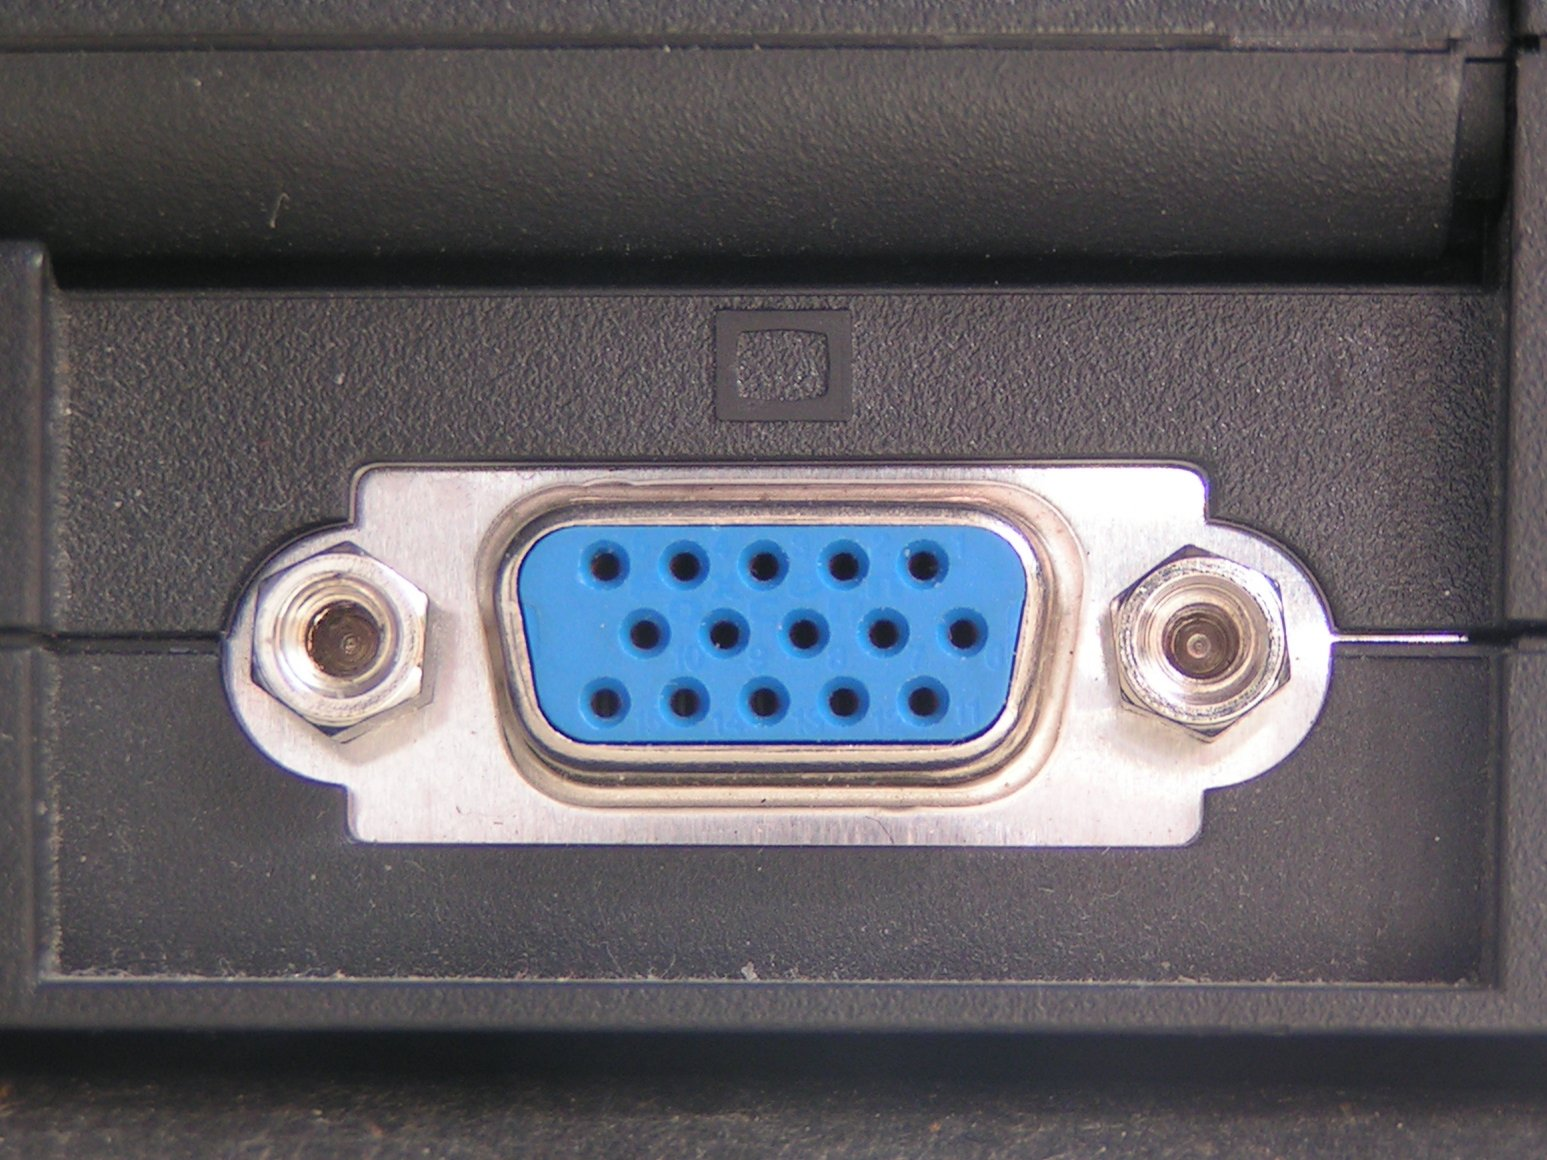 DE-15F, used for VGA, SVGA and XGA ports